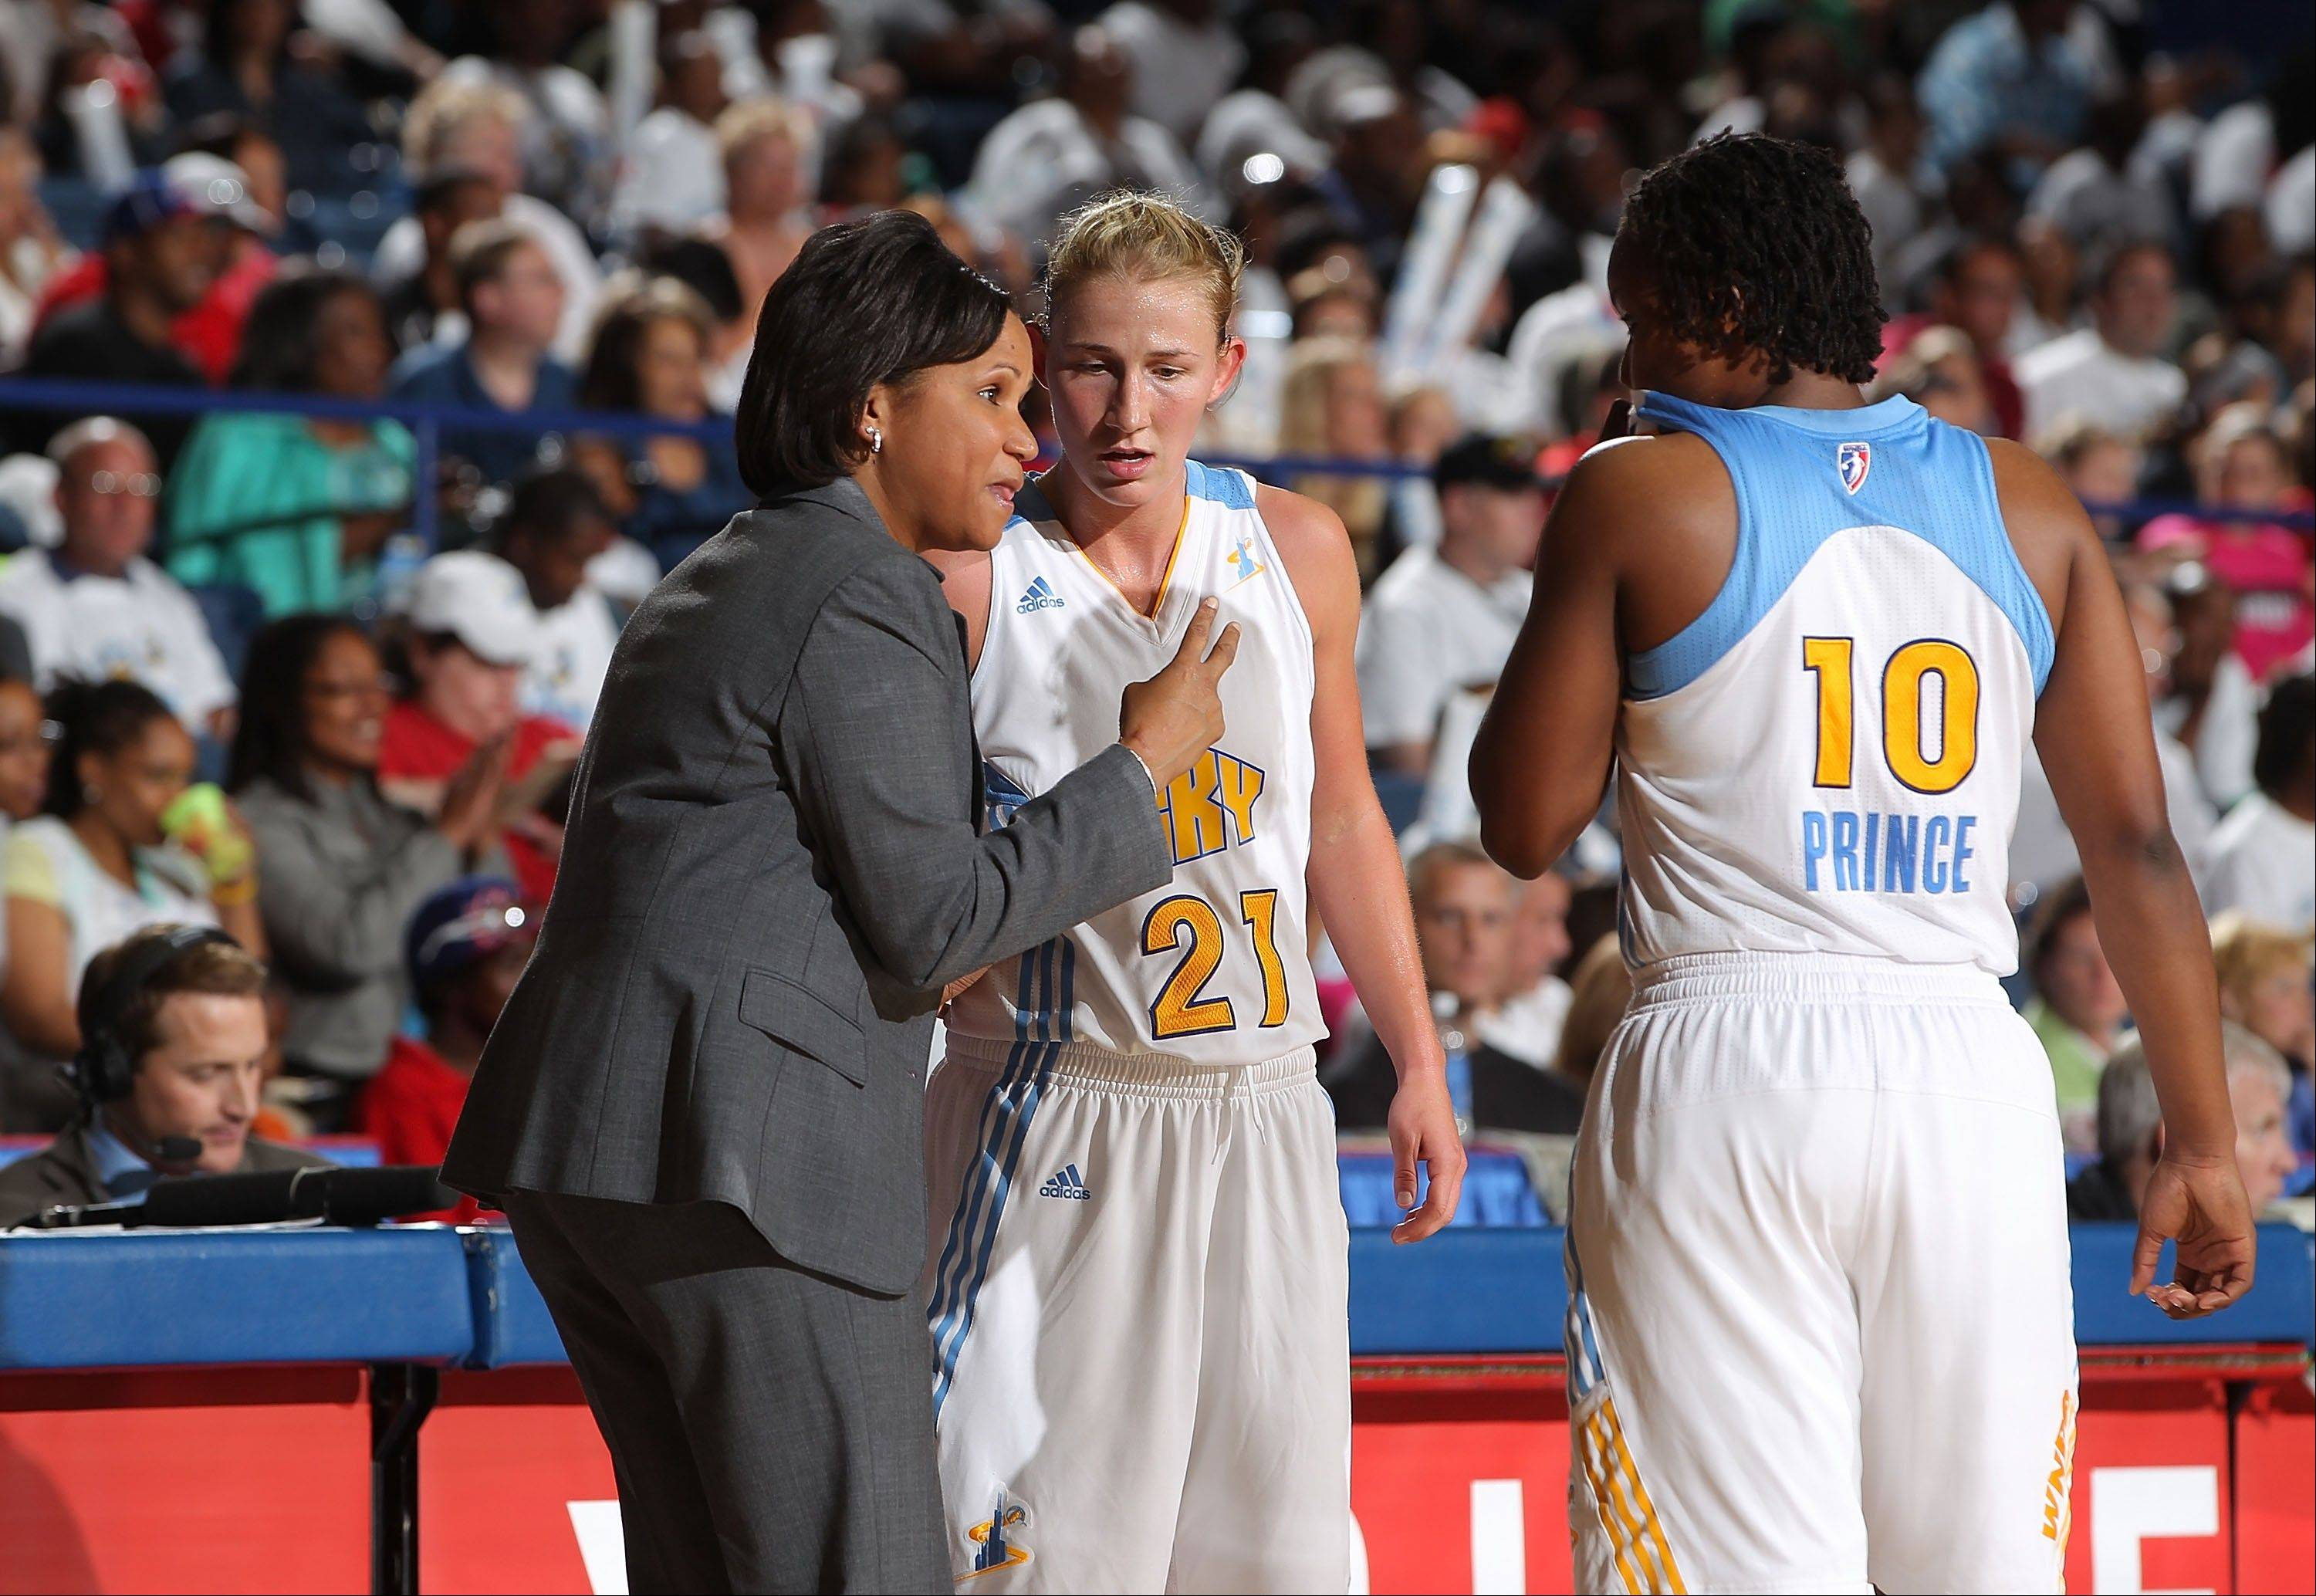 Sky head coach Pokey Chatman will be expecting more from her young guards this season, Courtney Vandersloot (21) and Epiphany Prince (10), but she also has added a veteran to help their progress with Ticha Penicheiro, the WNBA's all-time assists leader.